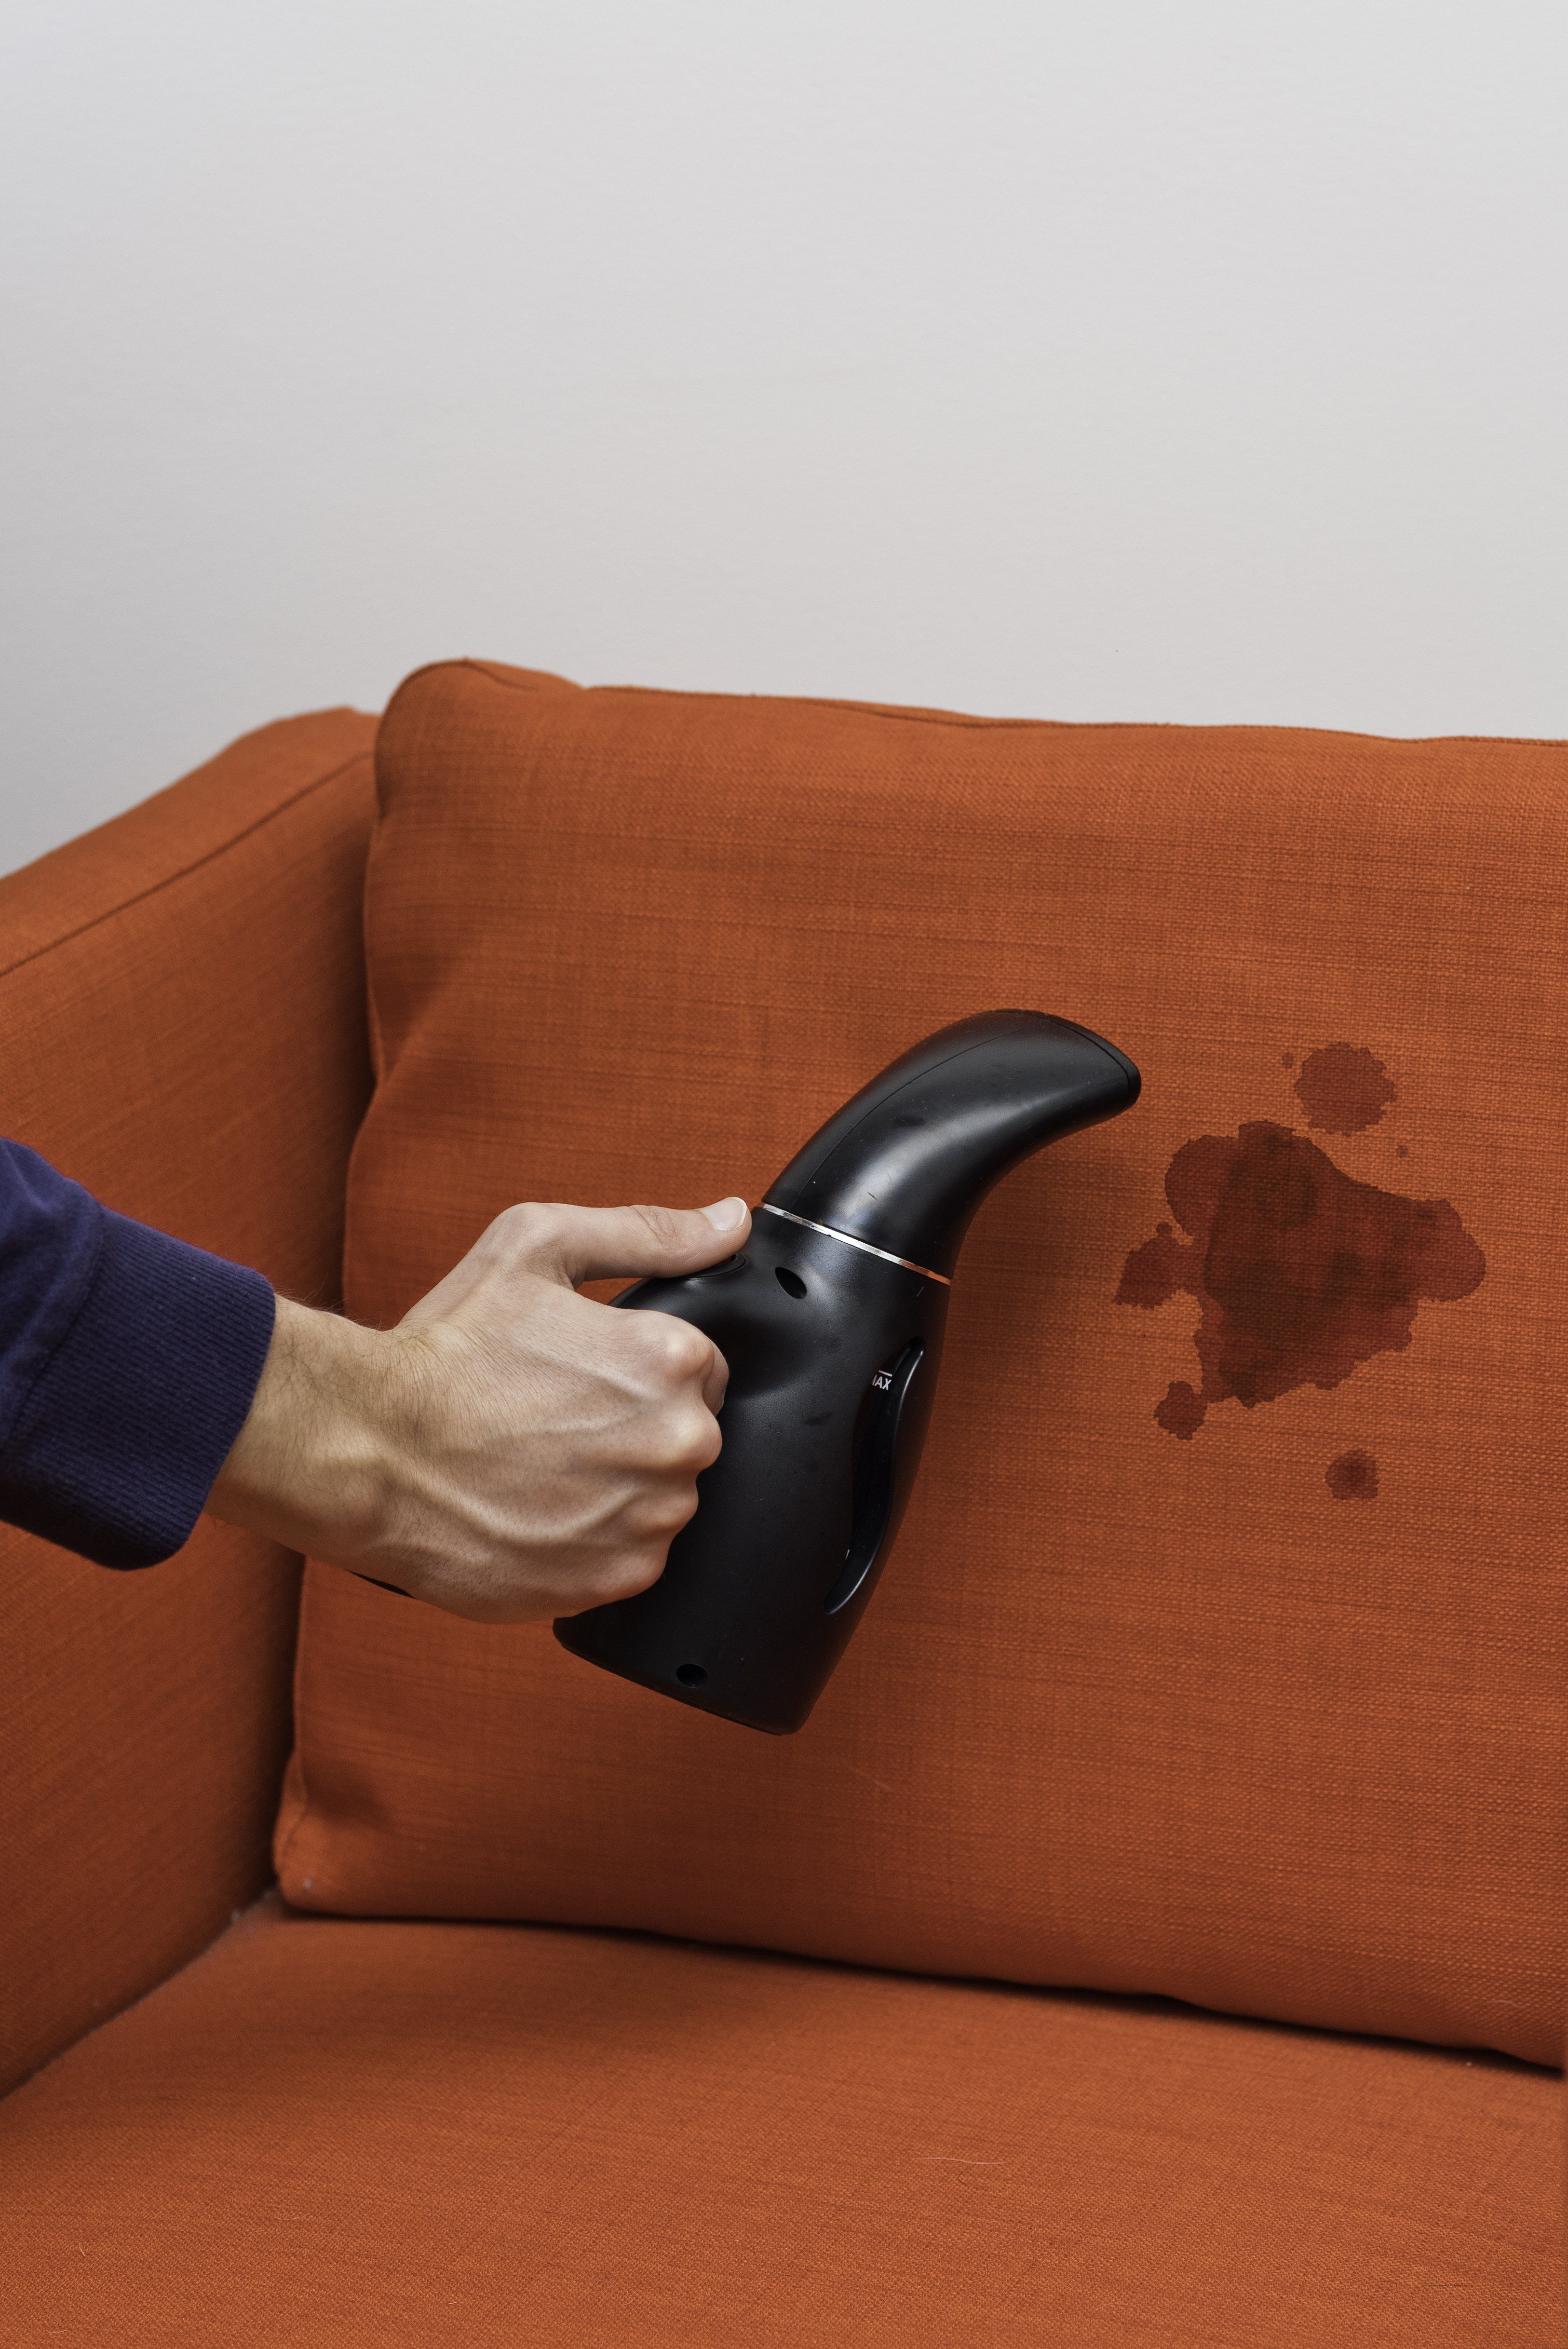 Astounding How To Clean Upholstery Couch Stains Remove Couch Squirreltailoven Fun Painted Chair Ideas Images Squirreltailovenorg